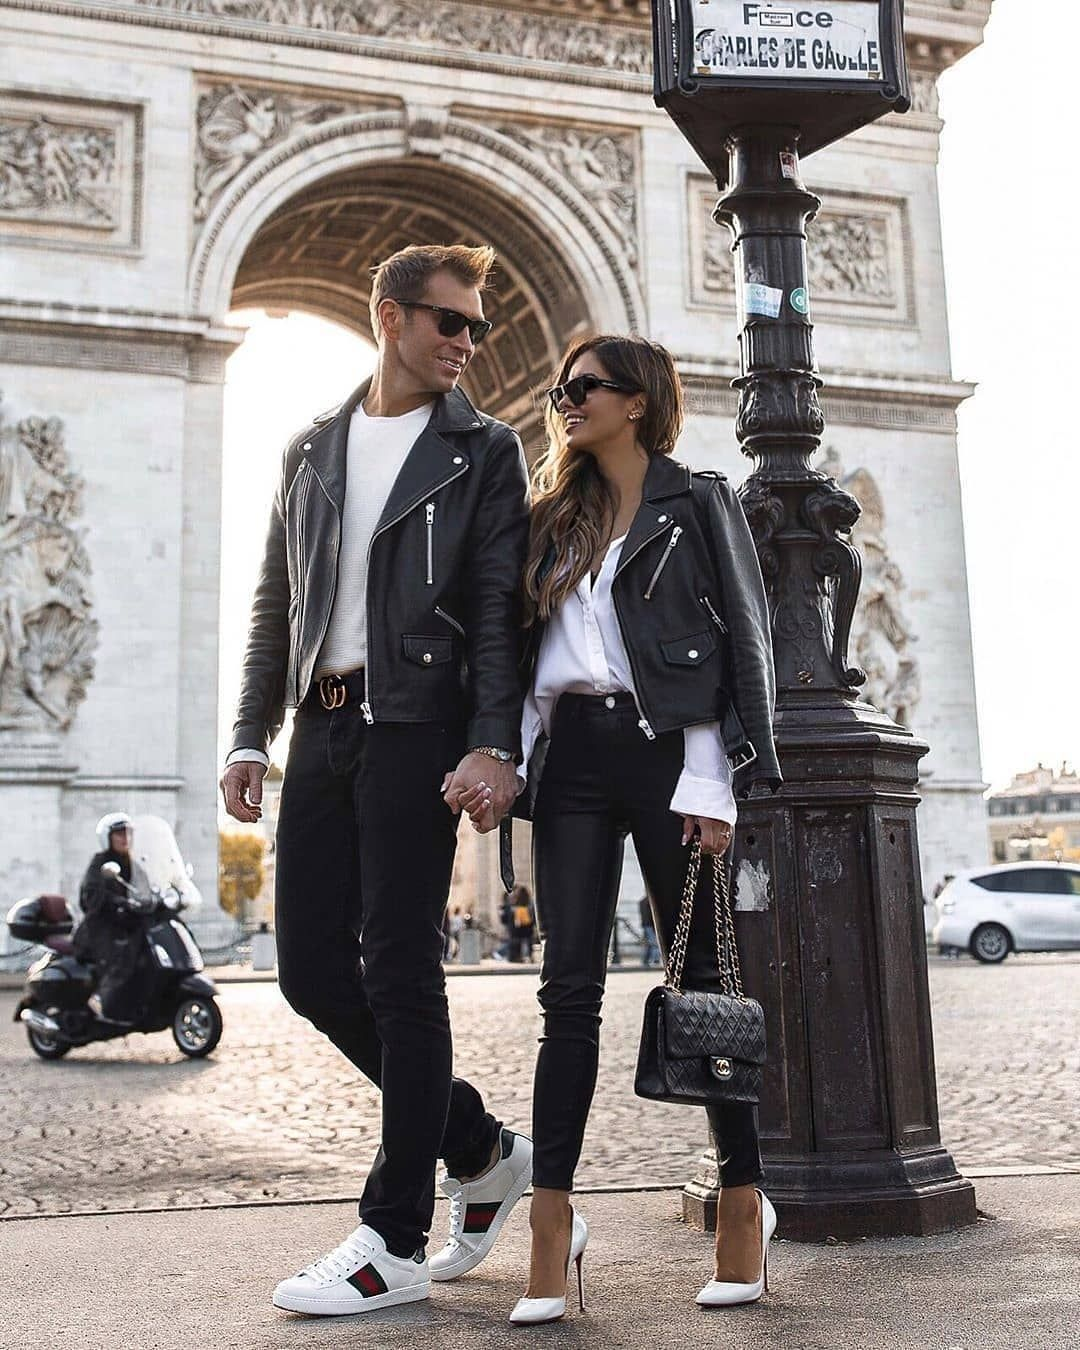 Matching Couple Outfits with accessories